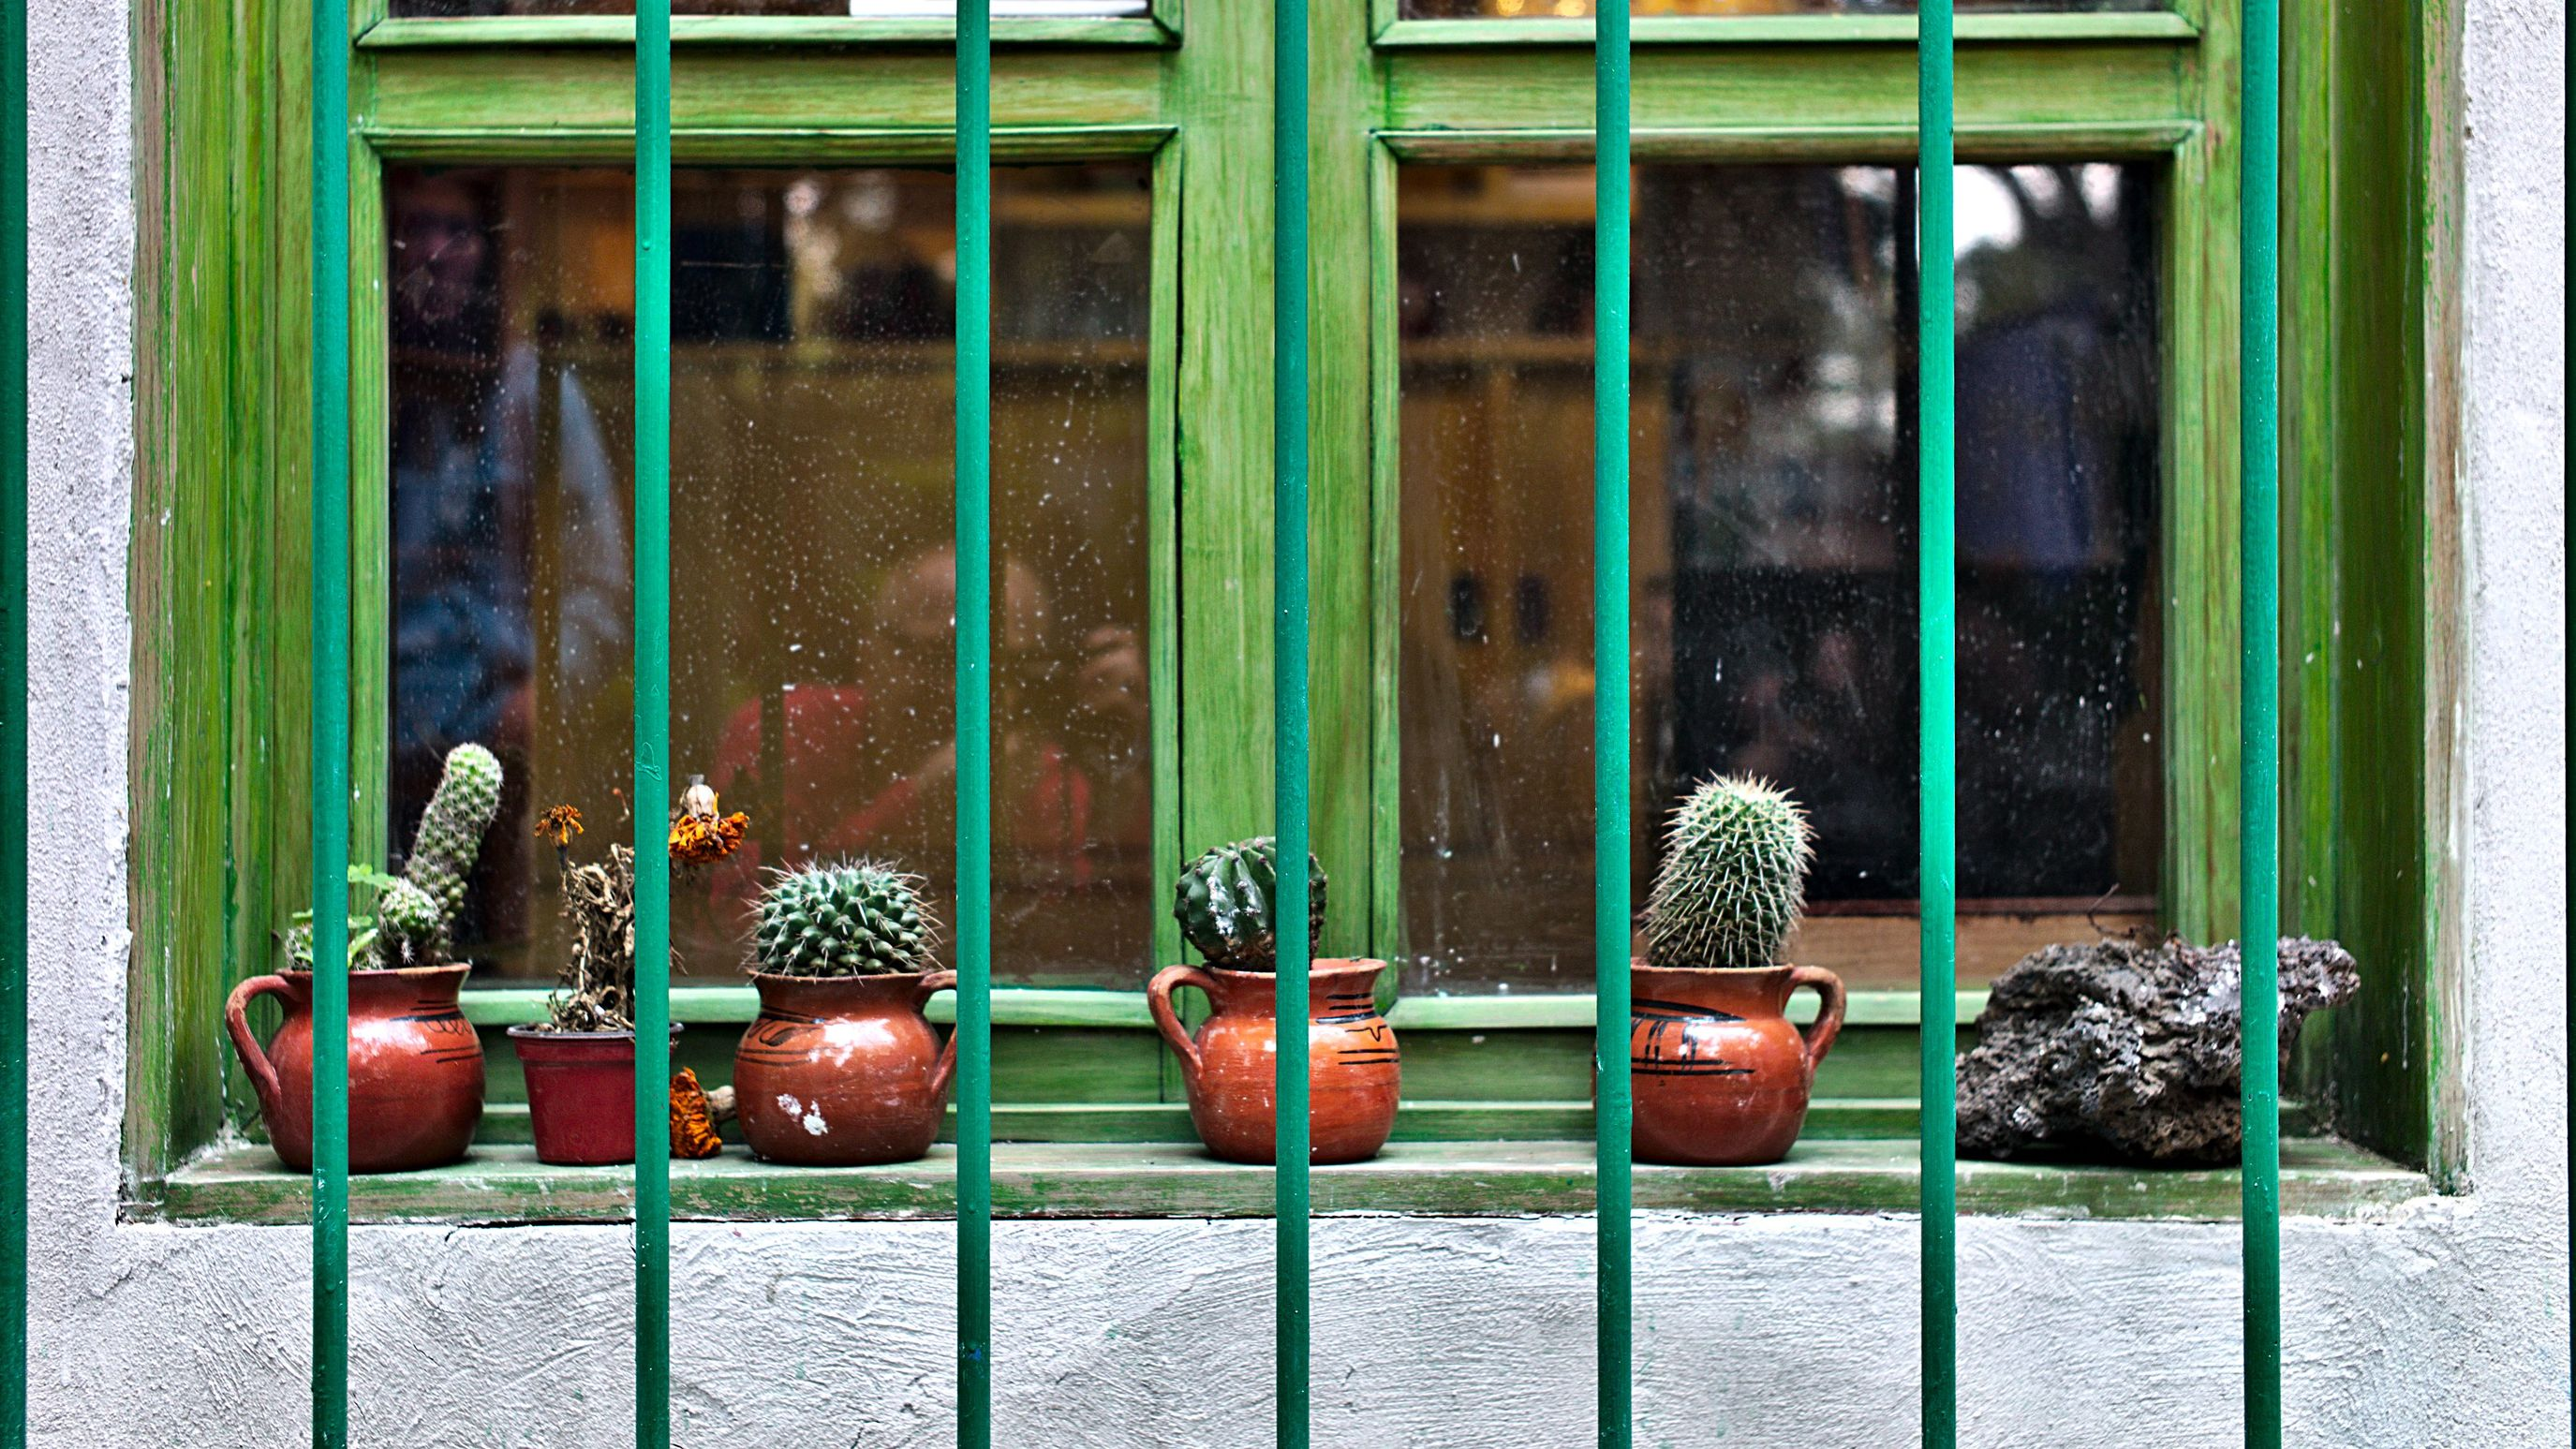 cactus on window sill Architecture Built Structure Cactus Day Frieda Kahlo Museum Green No People Outdoors Rock Security Bar Window